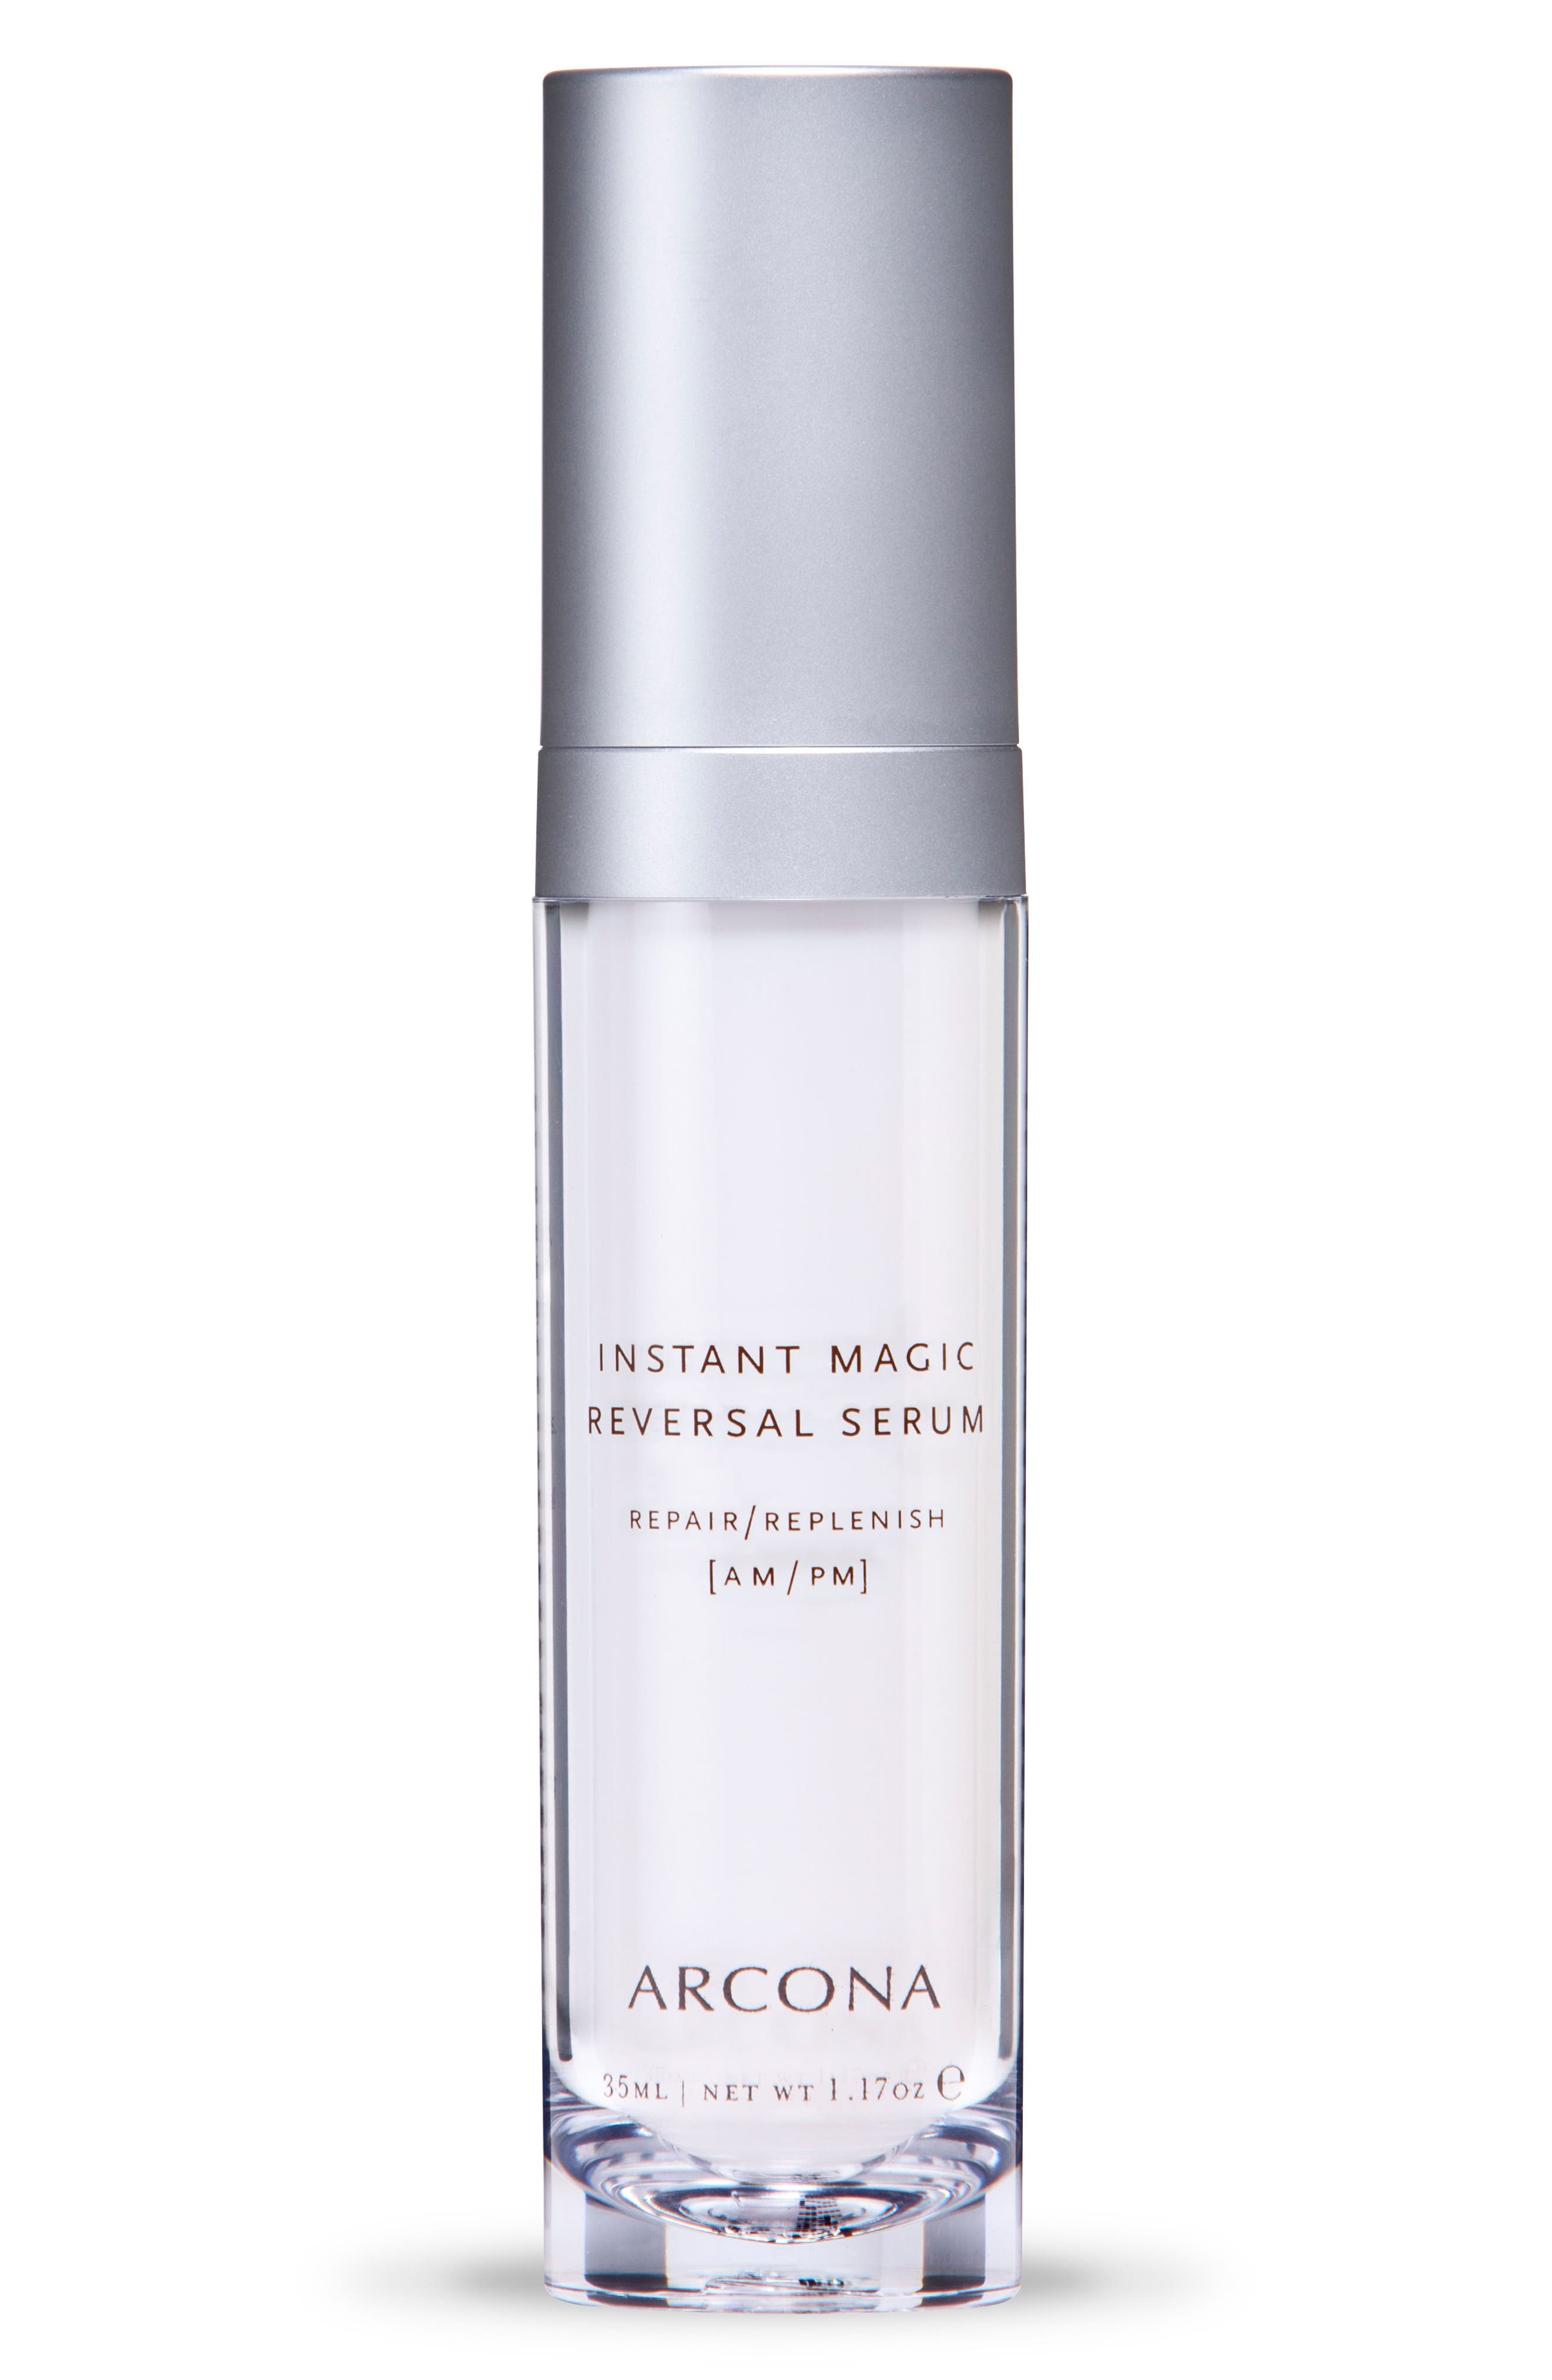 Alternate Image 1 Selected - ARCONA Instant Magic Reversal Serum